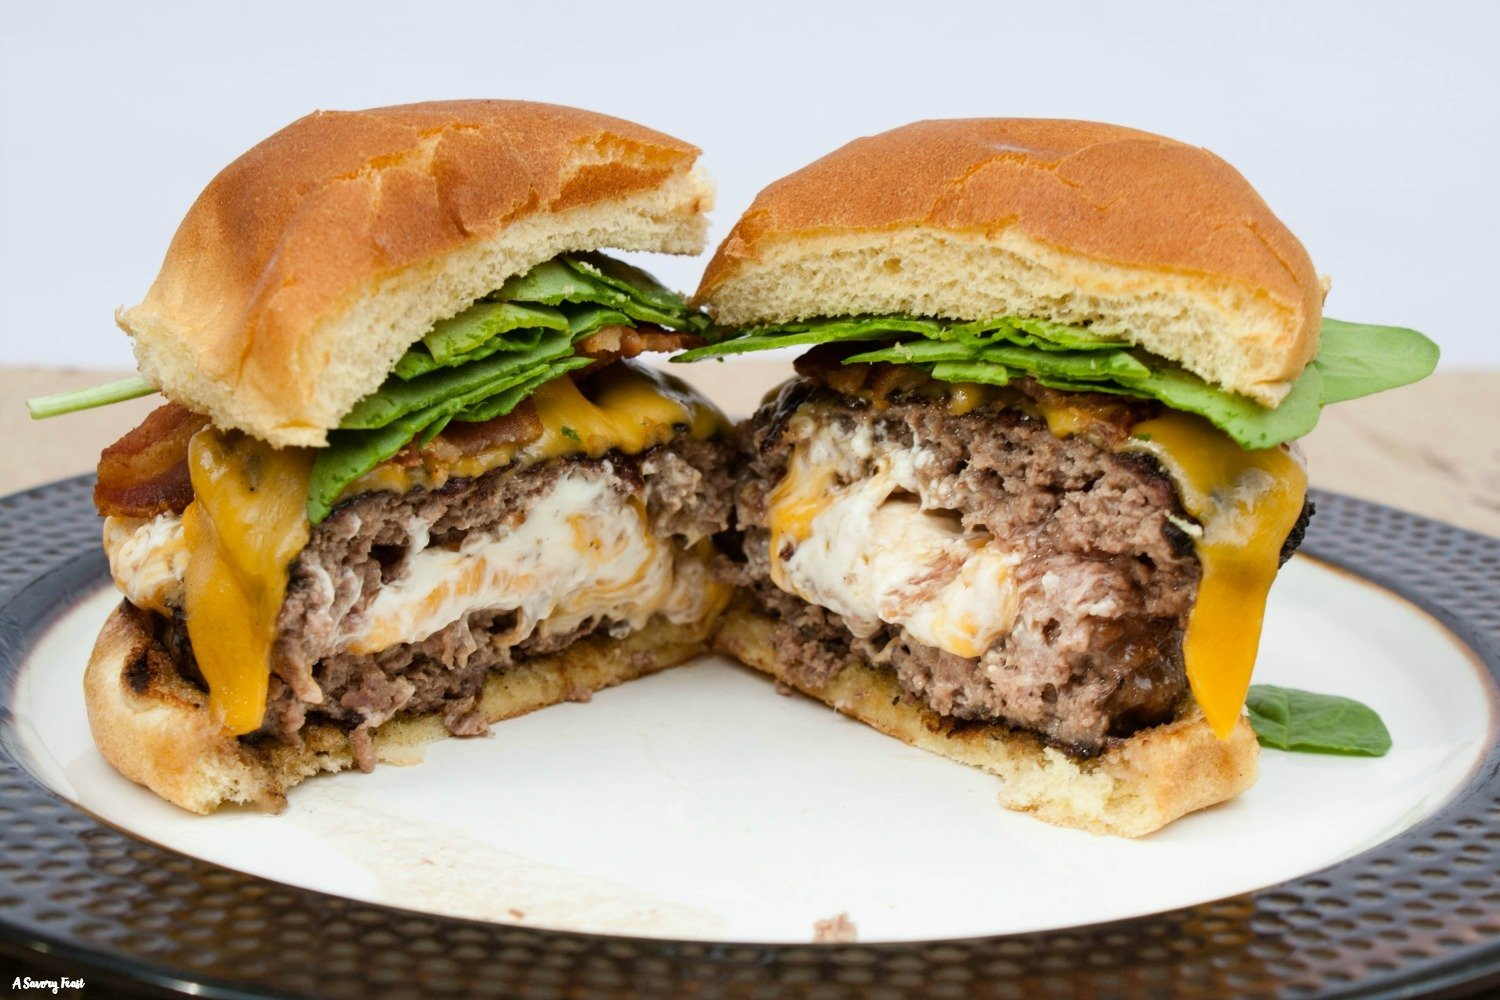 How to make cream cheese stuffed burgers.